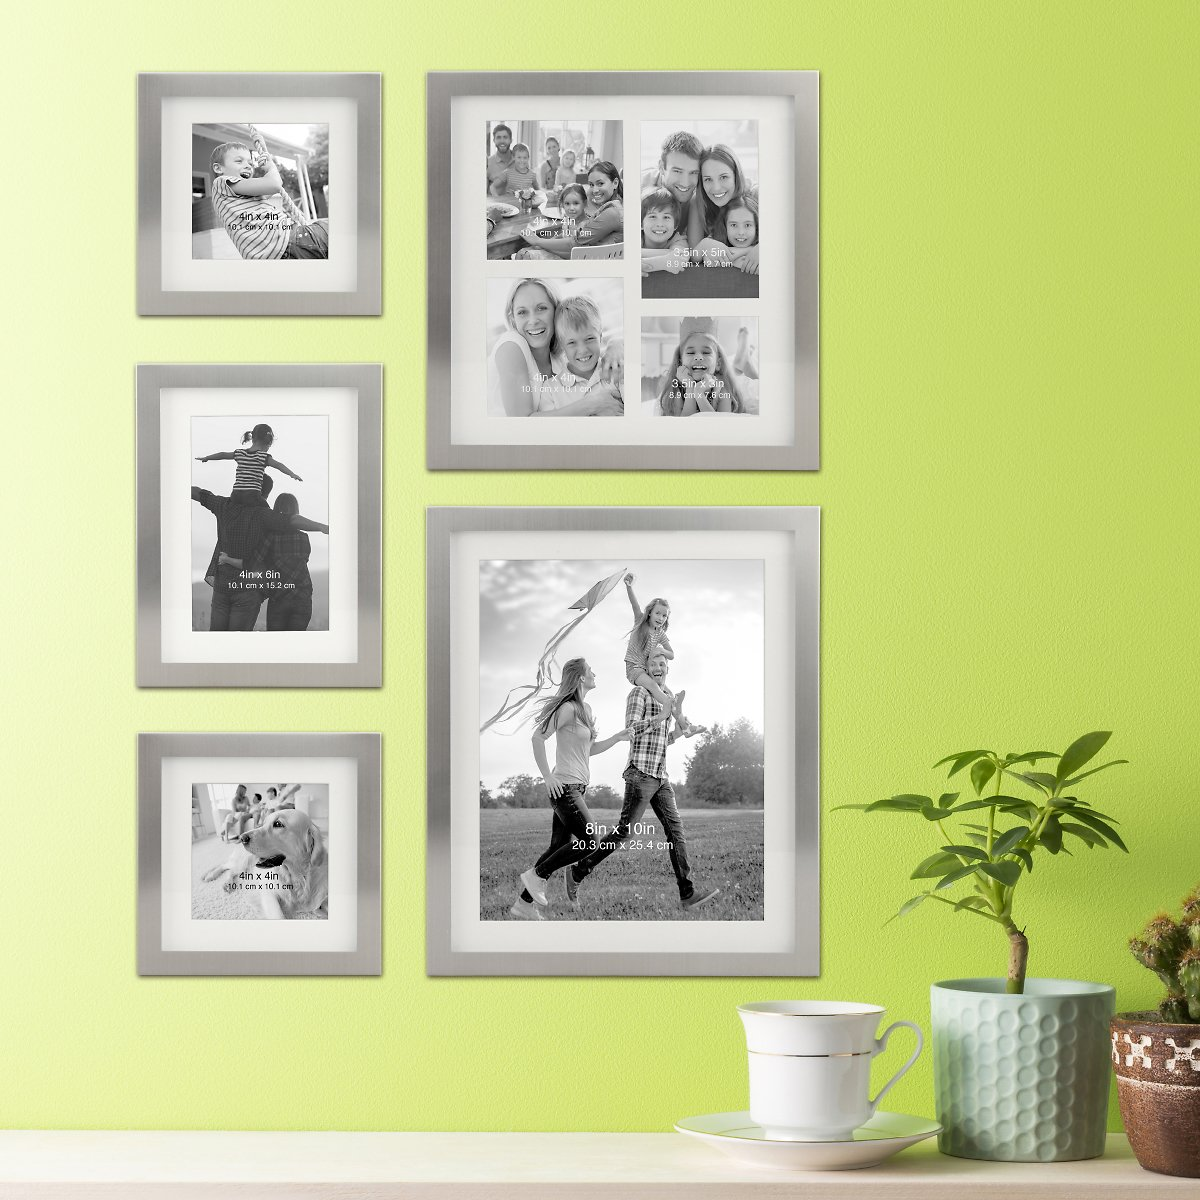 Better Homes & Gardens Set of 5: Metal Wall Gallery Photo Frames